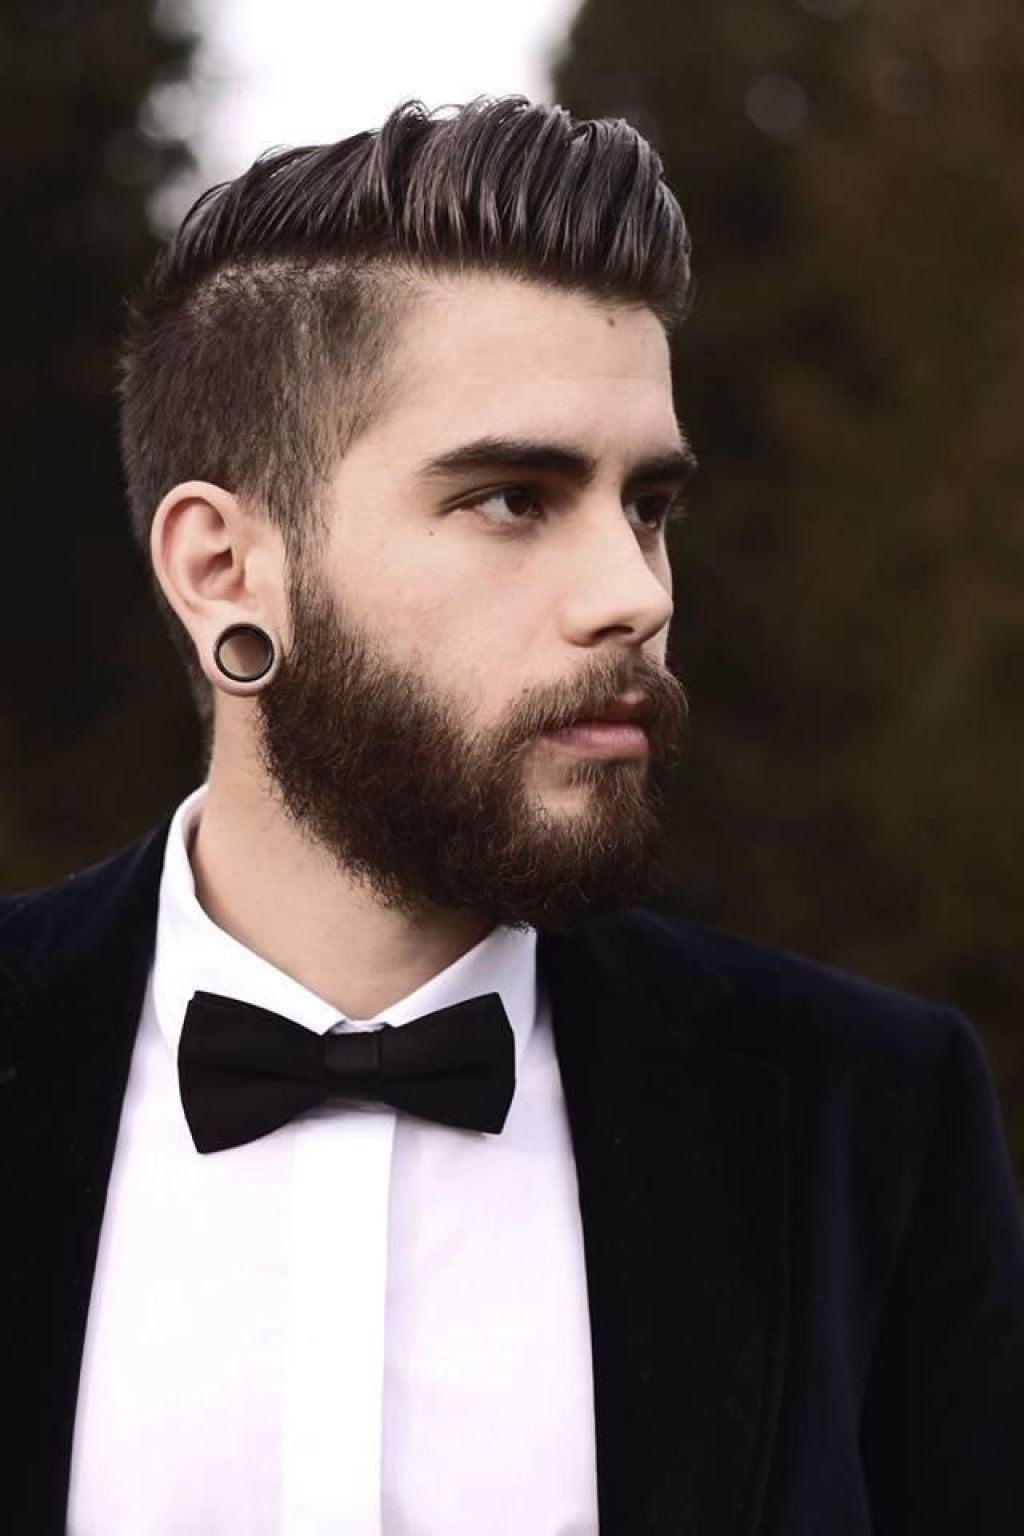 Hipster men haircut pin by cassy schillo on him  pinterest  hair styles hair cuts and